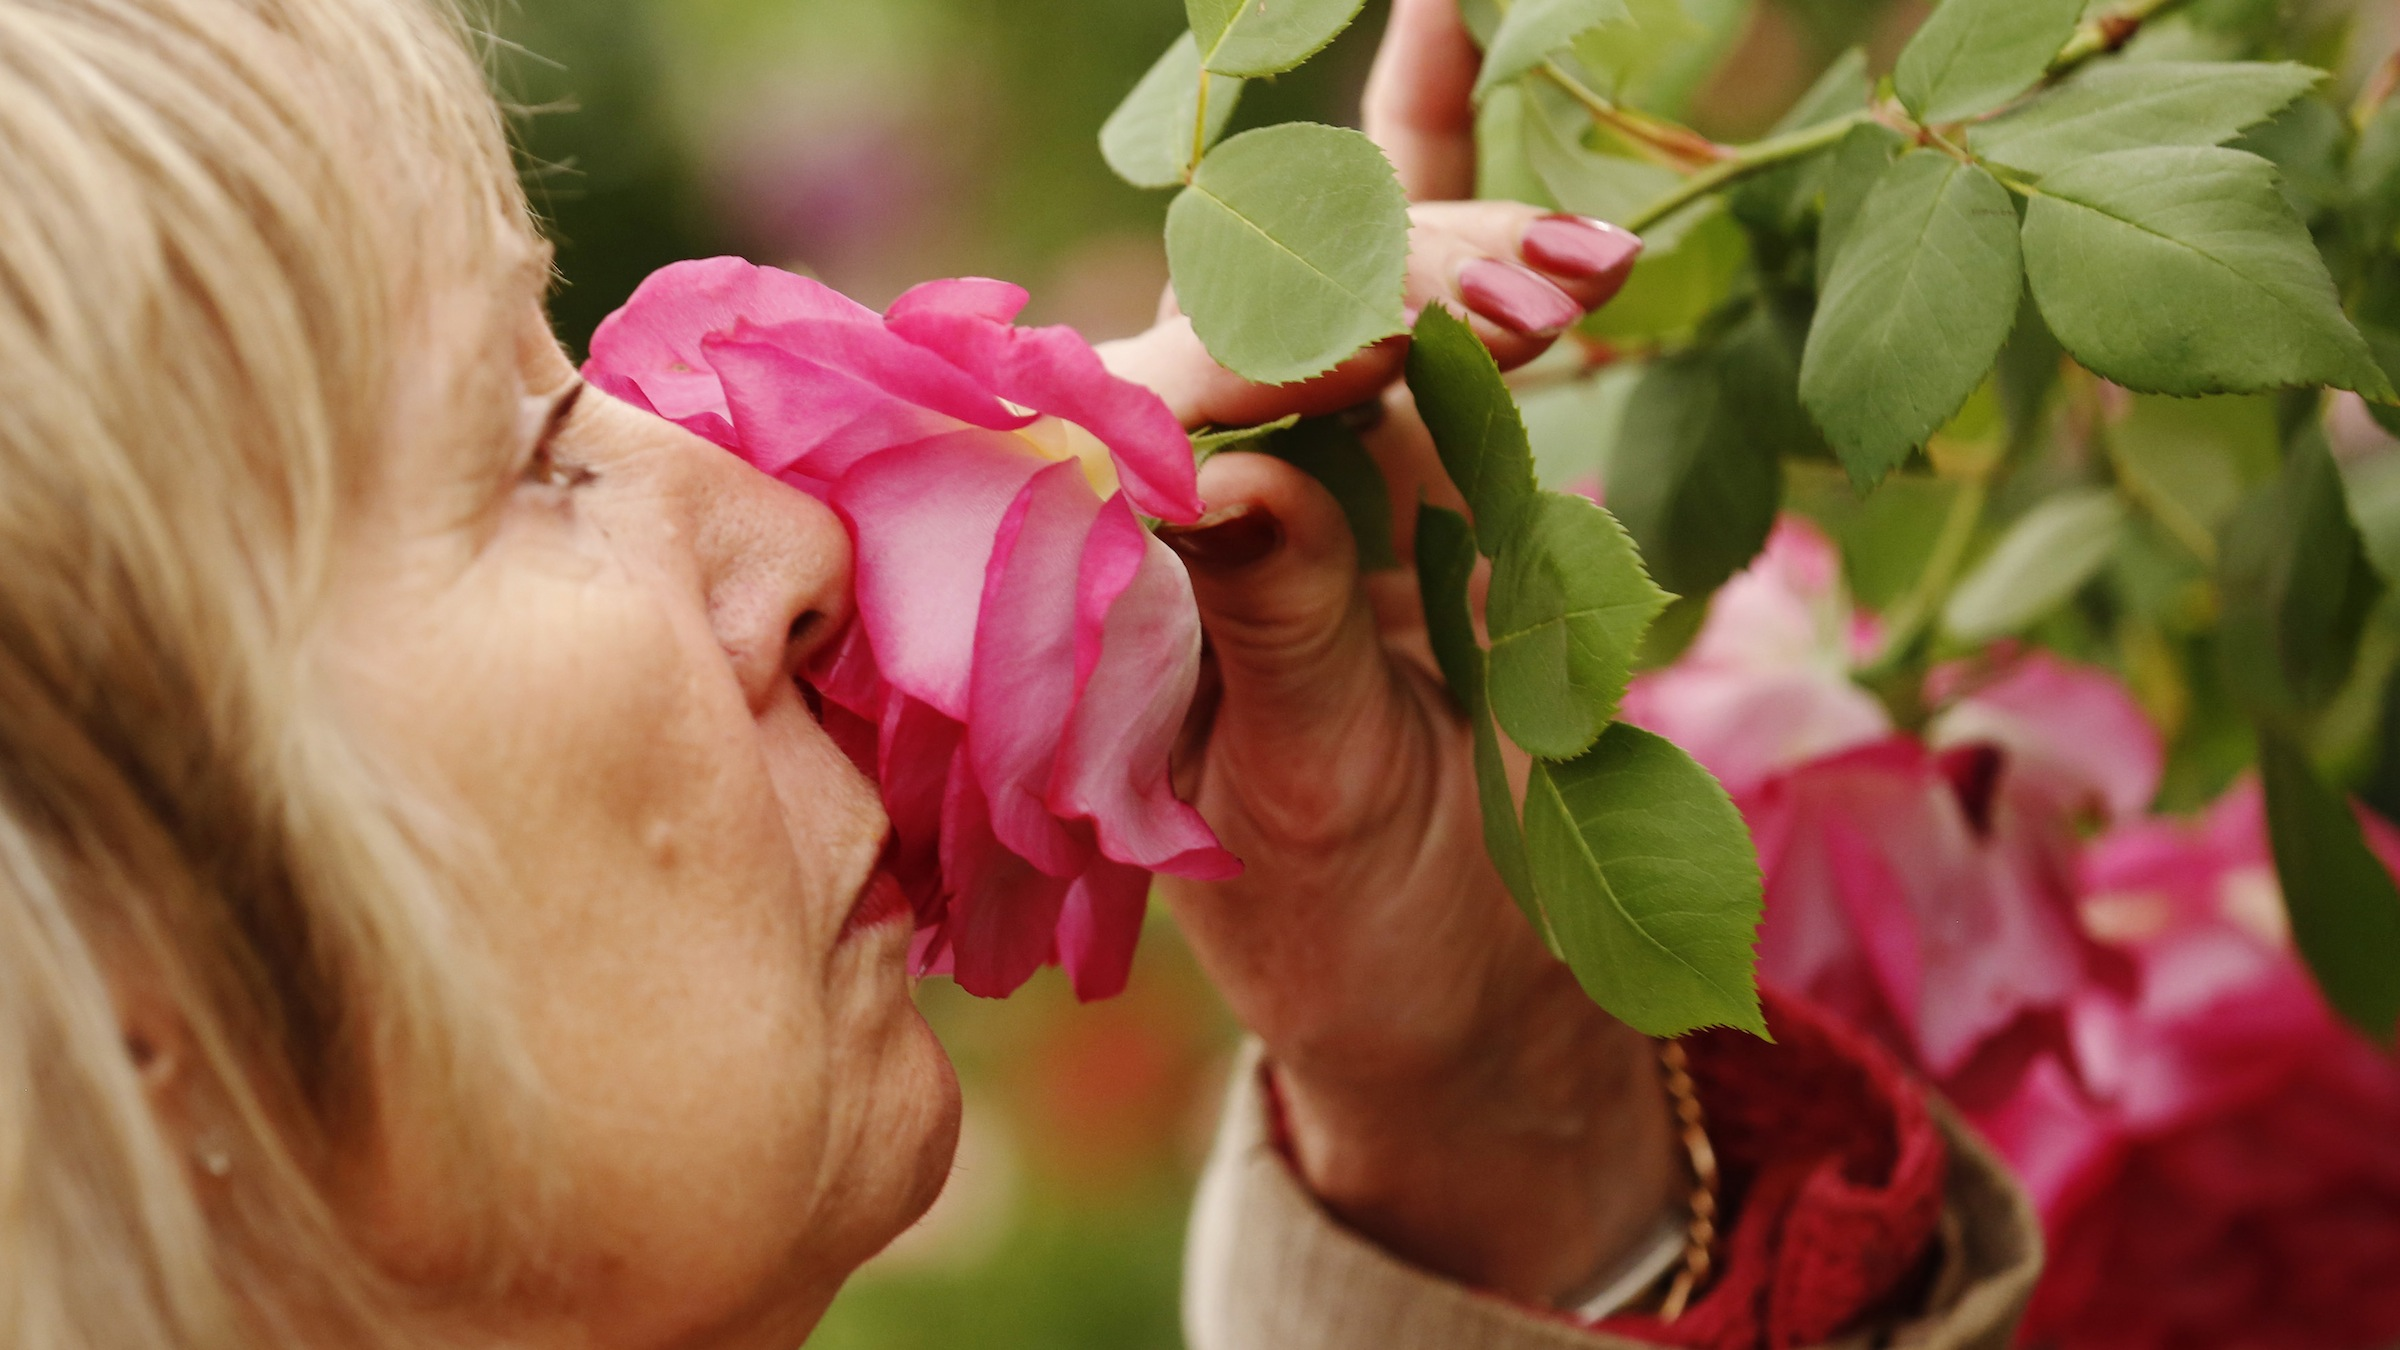 A visitor smells a Sir Paul Smith climbing rose at the Chelsea Flower Show in London May 21, 2013. REUTERS/Luke MacGregor (BRITAIN - Tags: SOCIETY) - RTXZVH9